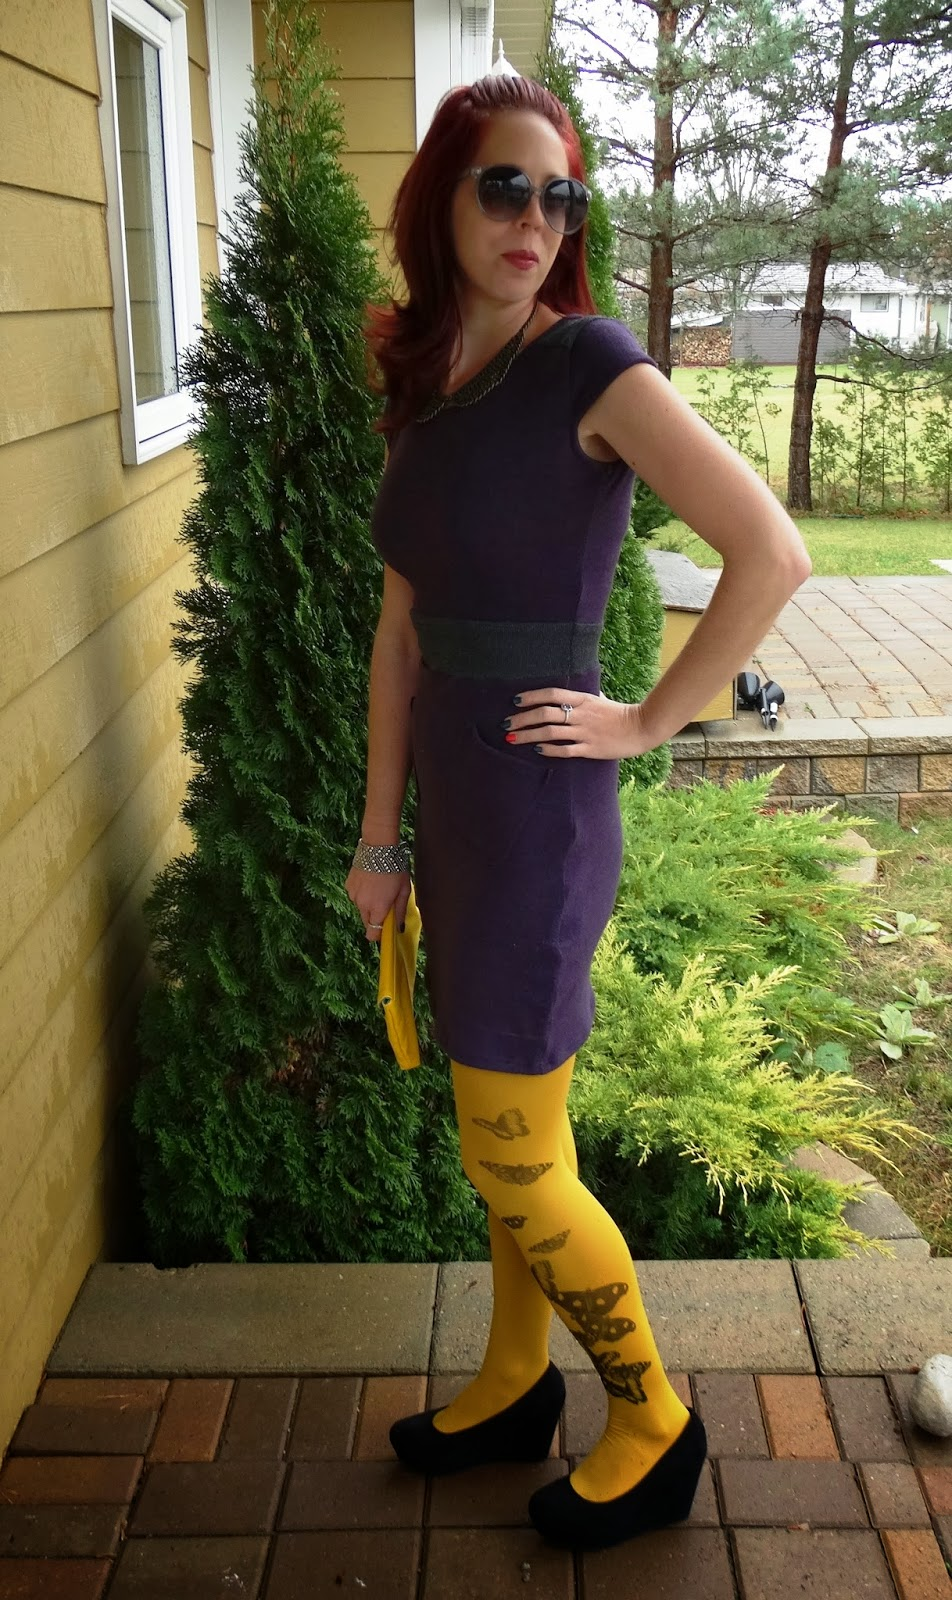 yellow butterfly Zohara tights with The Embellished Room purple dress, H&M Sunglasses and wedged heeled shoes, vintage clutch, Shop For Jayu collar necklace, toronto fashion and style colour blocking